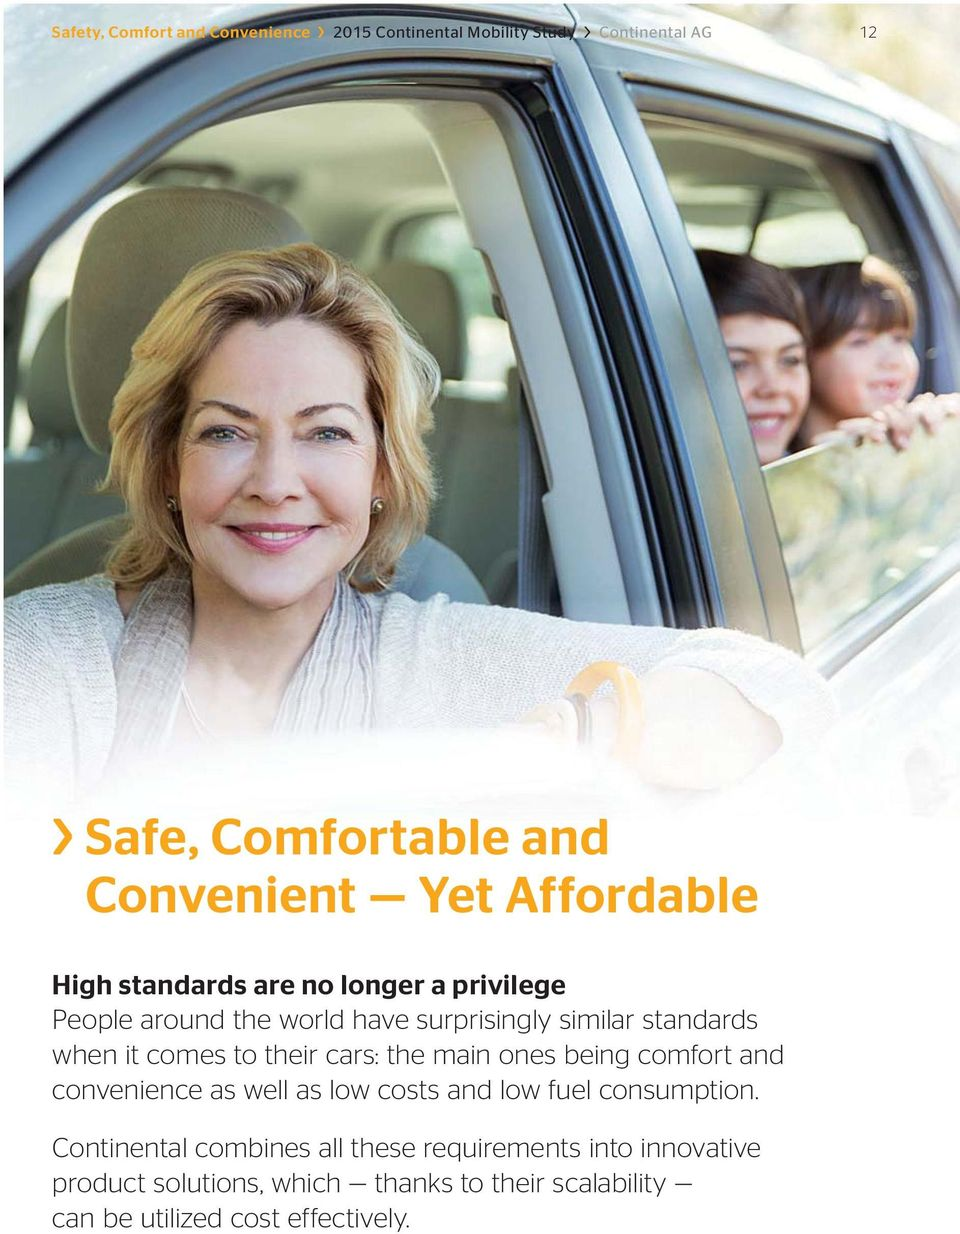 to their cars: the main ones being comfort and convenience as well as low costs and low fuel consumption.